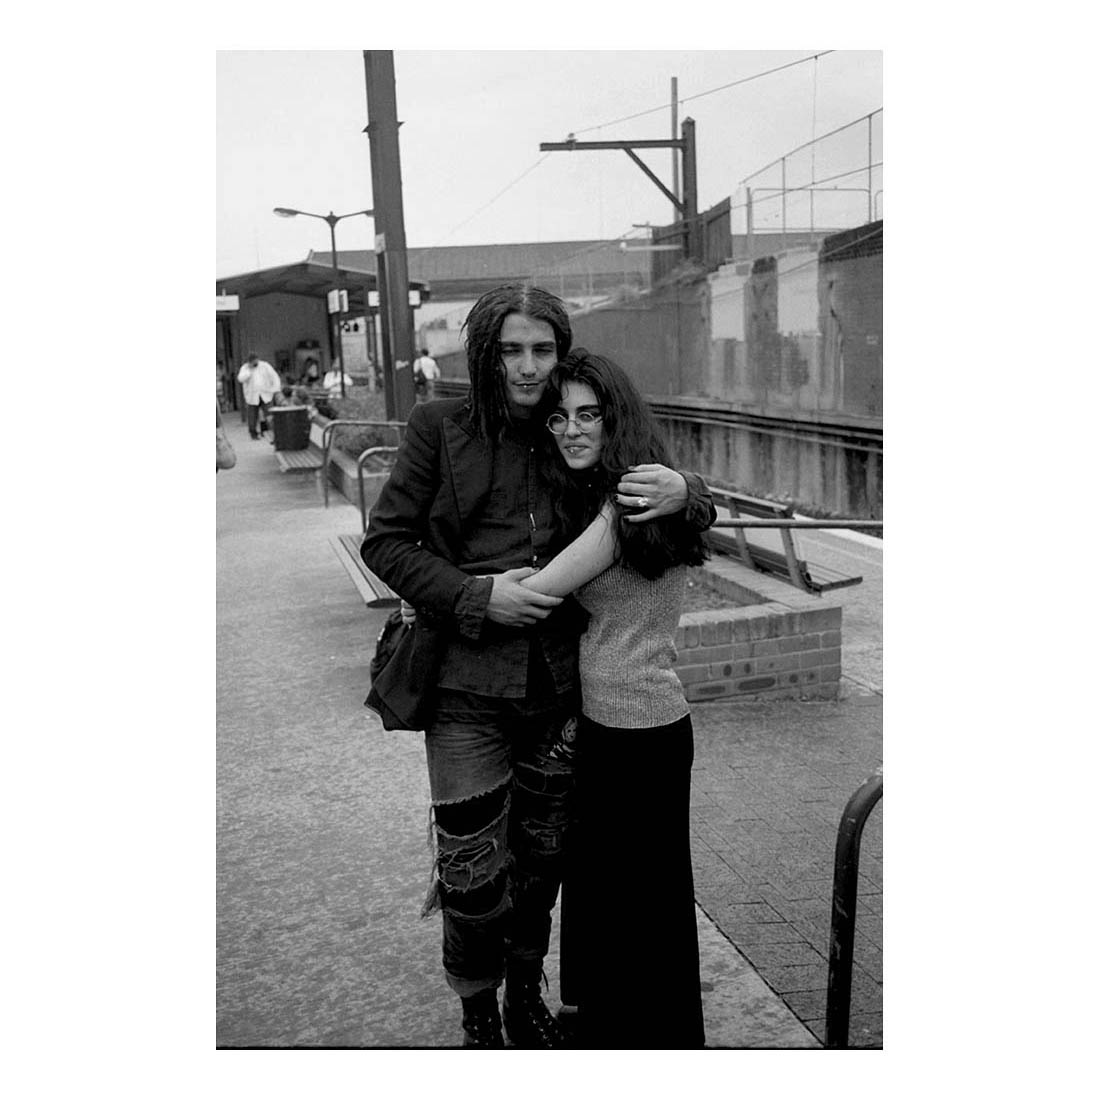 Zoe and her friend, 1996    I first met Zoe at the end of 1994 in Byron Bay. The next year I bumped into her a lot in Newtown and Glebe. She was nice, an interesting soul. This photo was taken at Newtown Station sometime in early 1996. I had just come up from Canberra and had a coffee with her that morning. I haven't seen Zoe since this photo was taken. I don't remember the guy's name.